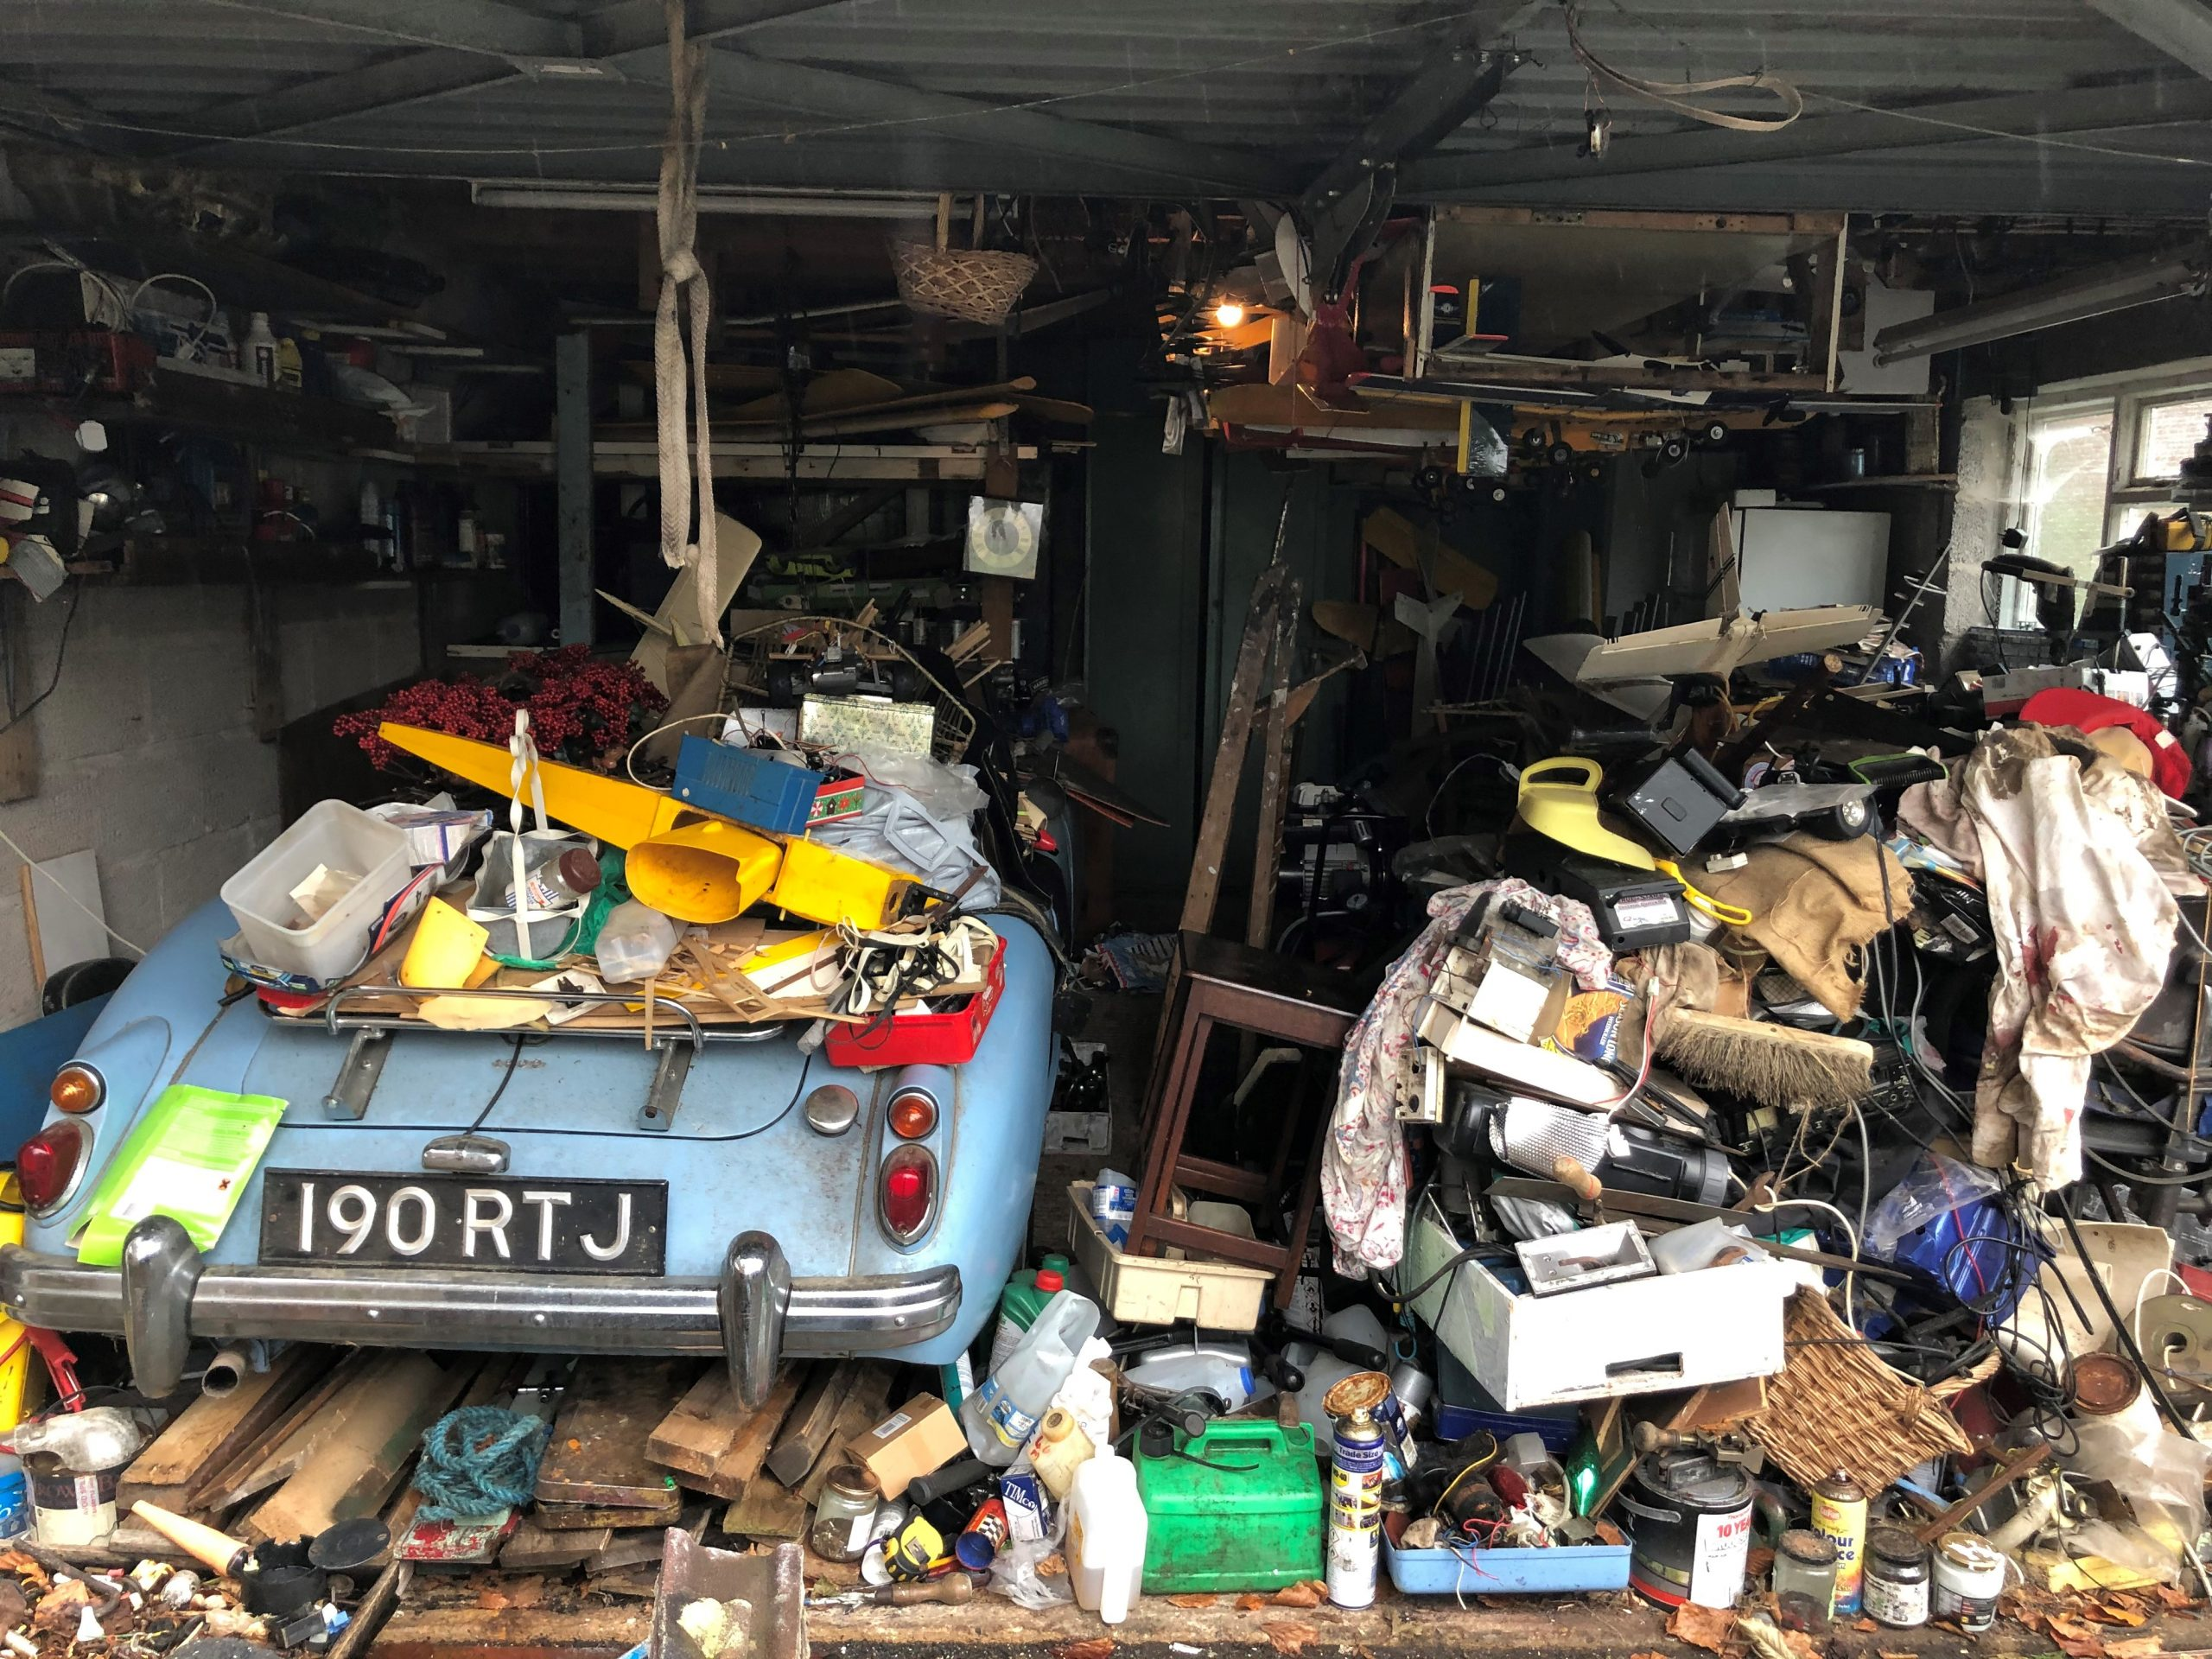 MGA rescued after 20 years buried beneath rubbish